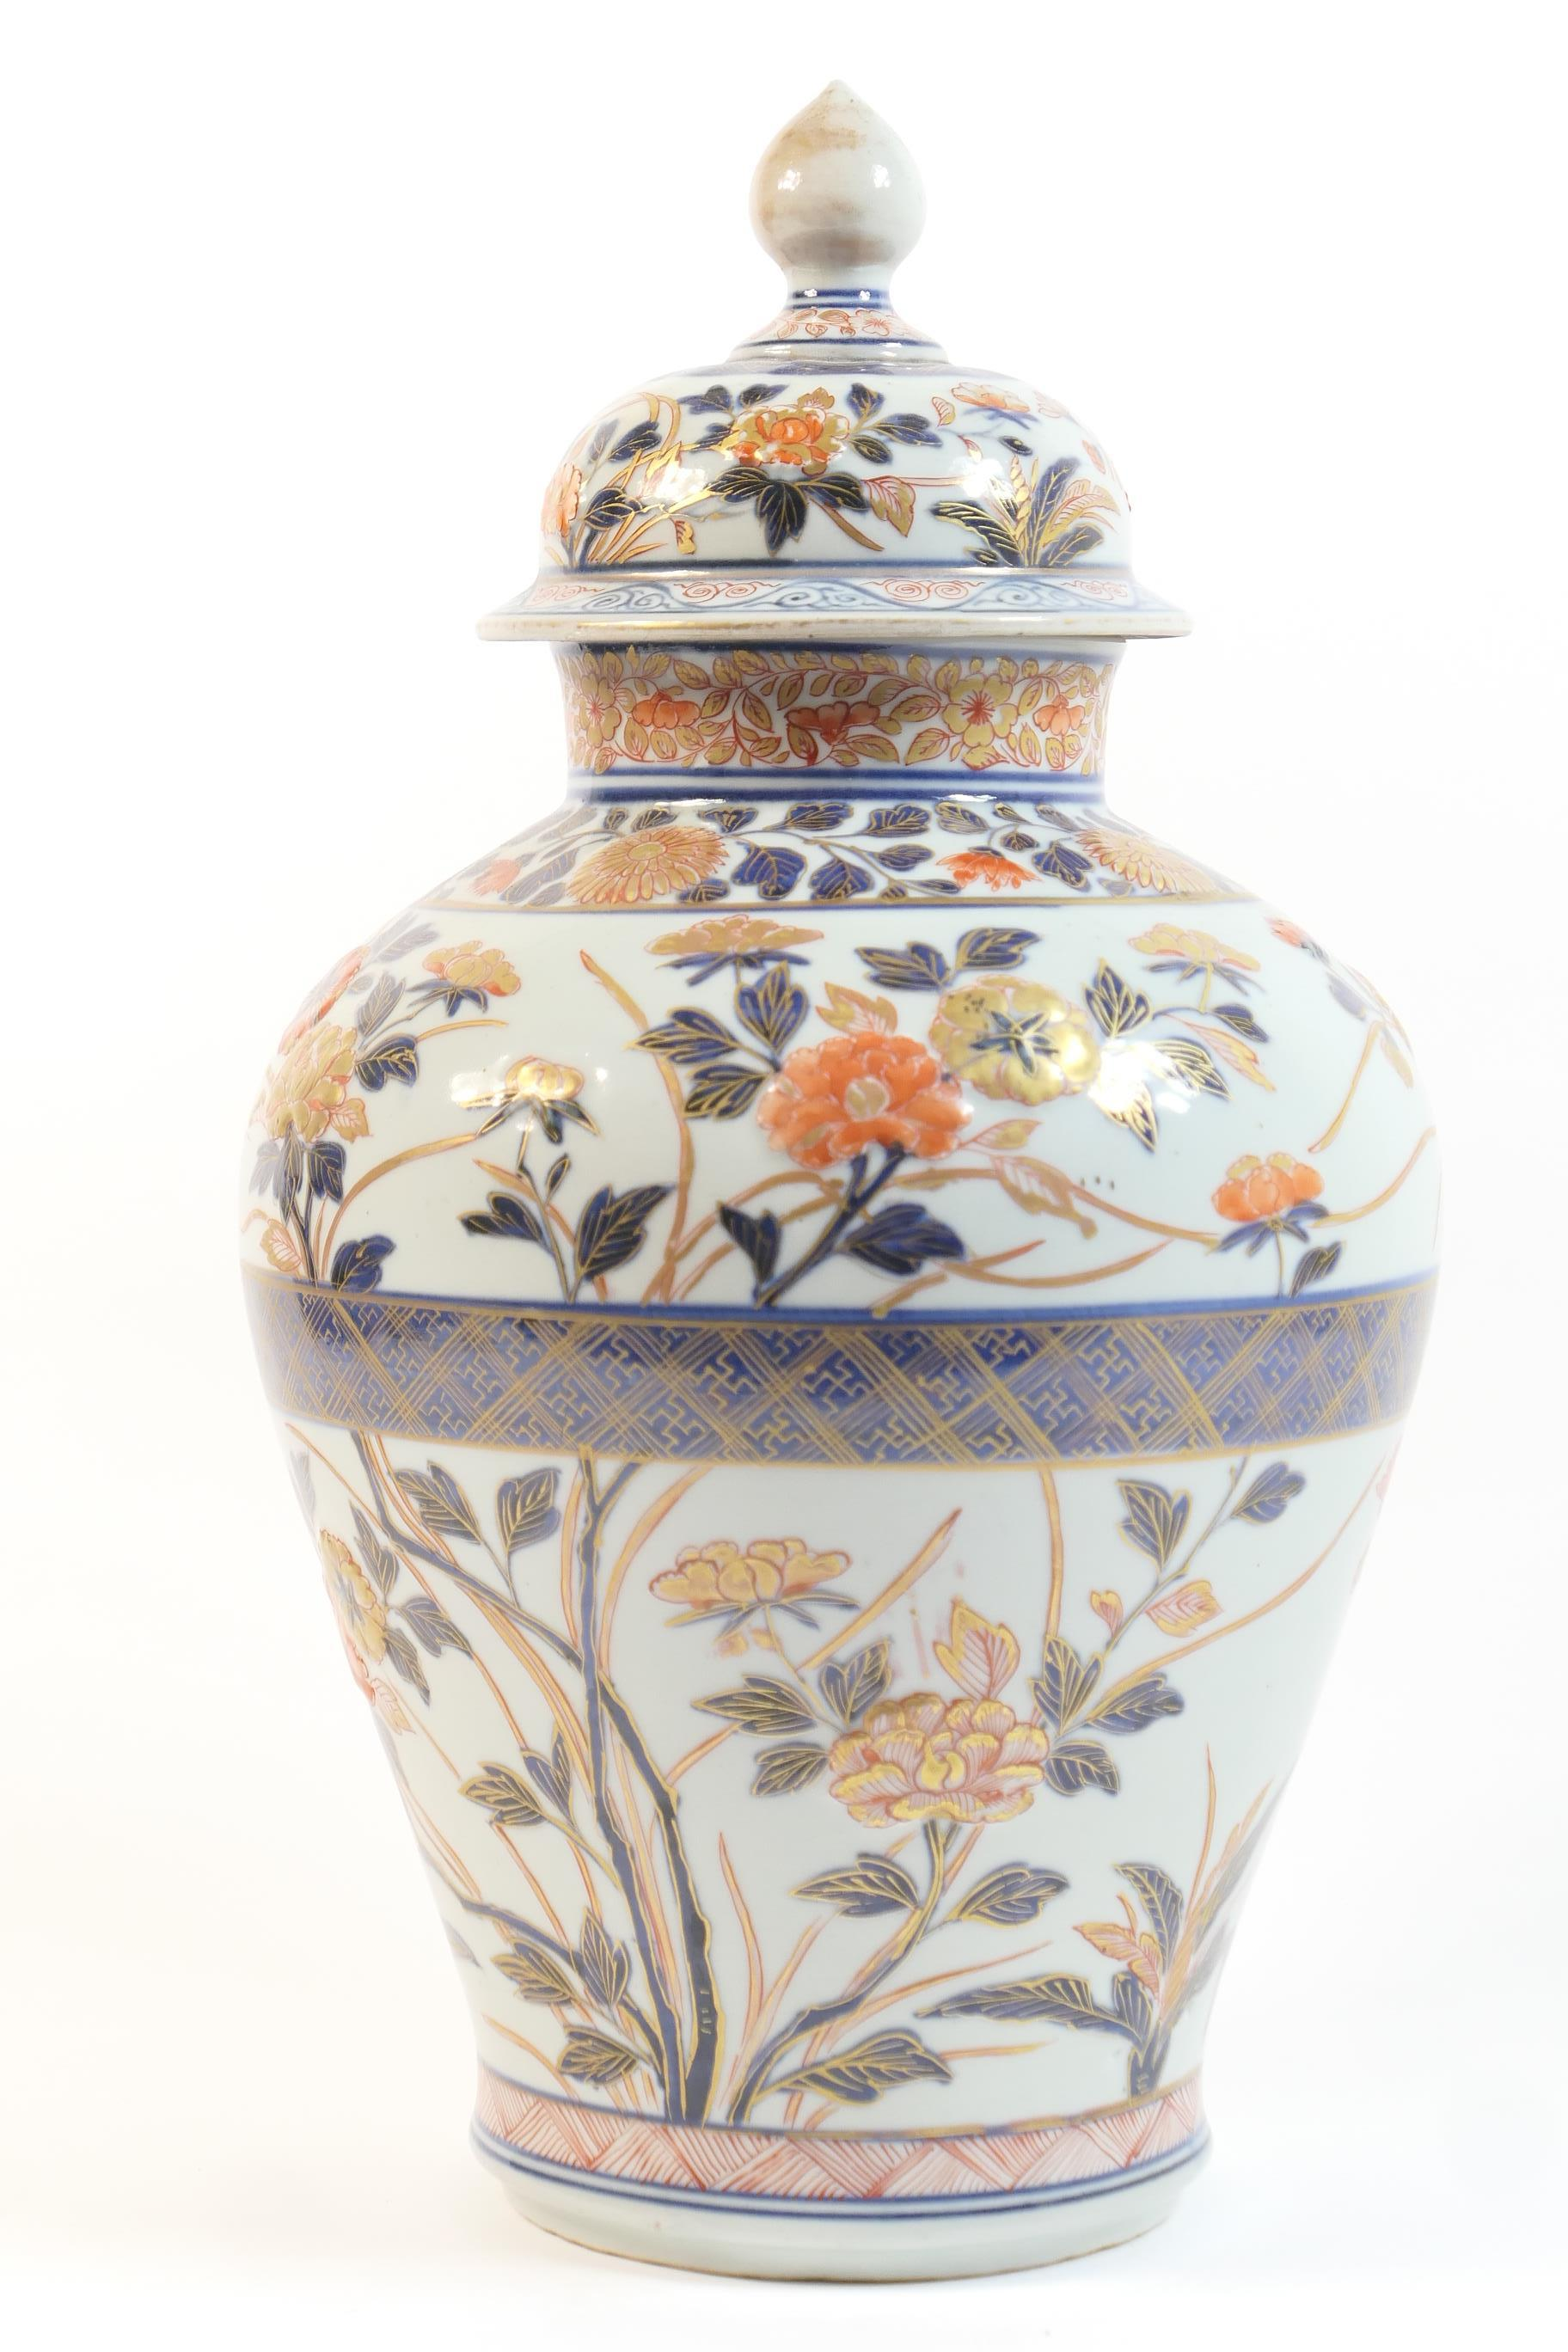 Lot 25 - Japanese Arita porcelain jar and cover, Meiji (1868-1912), decorated in typical Imari palette with